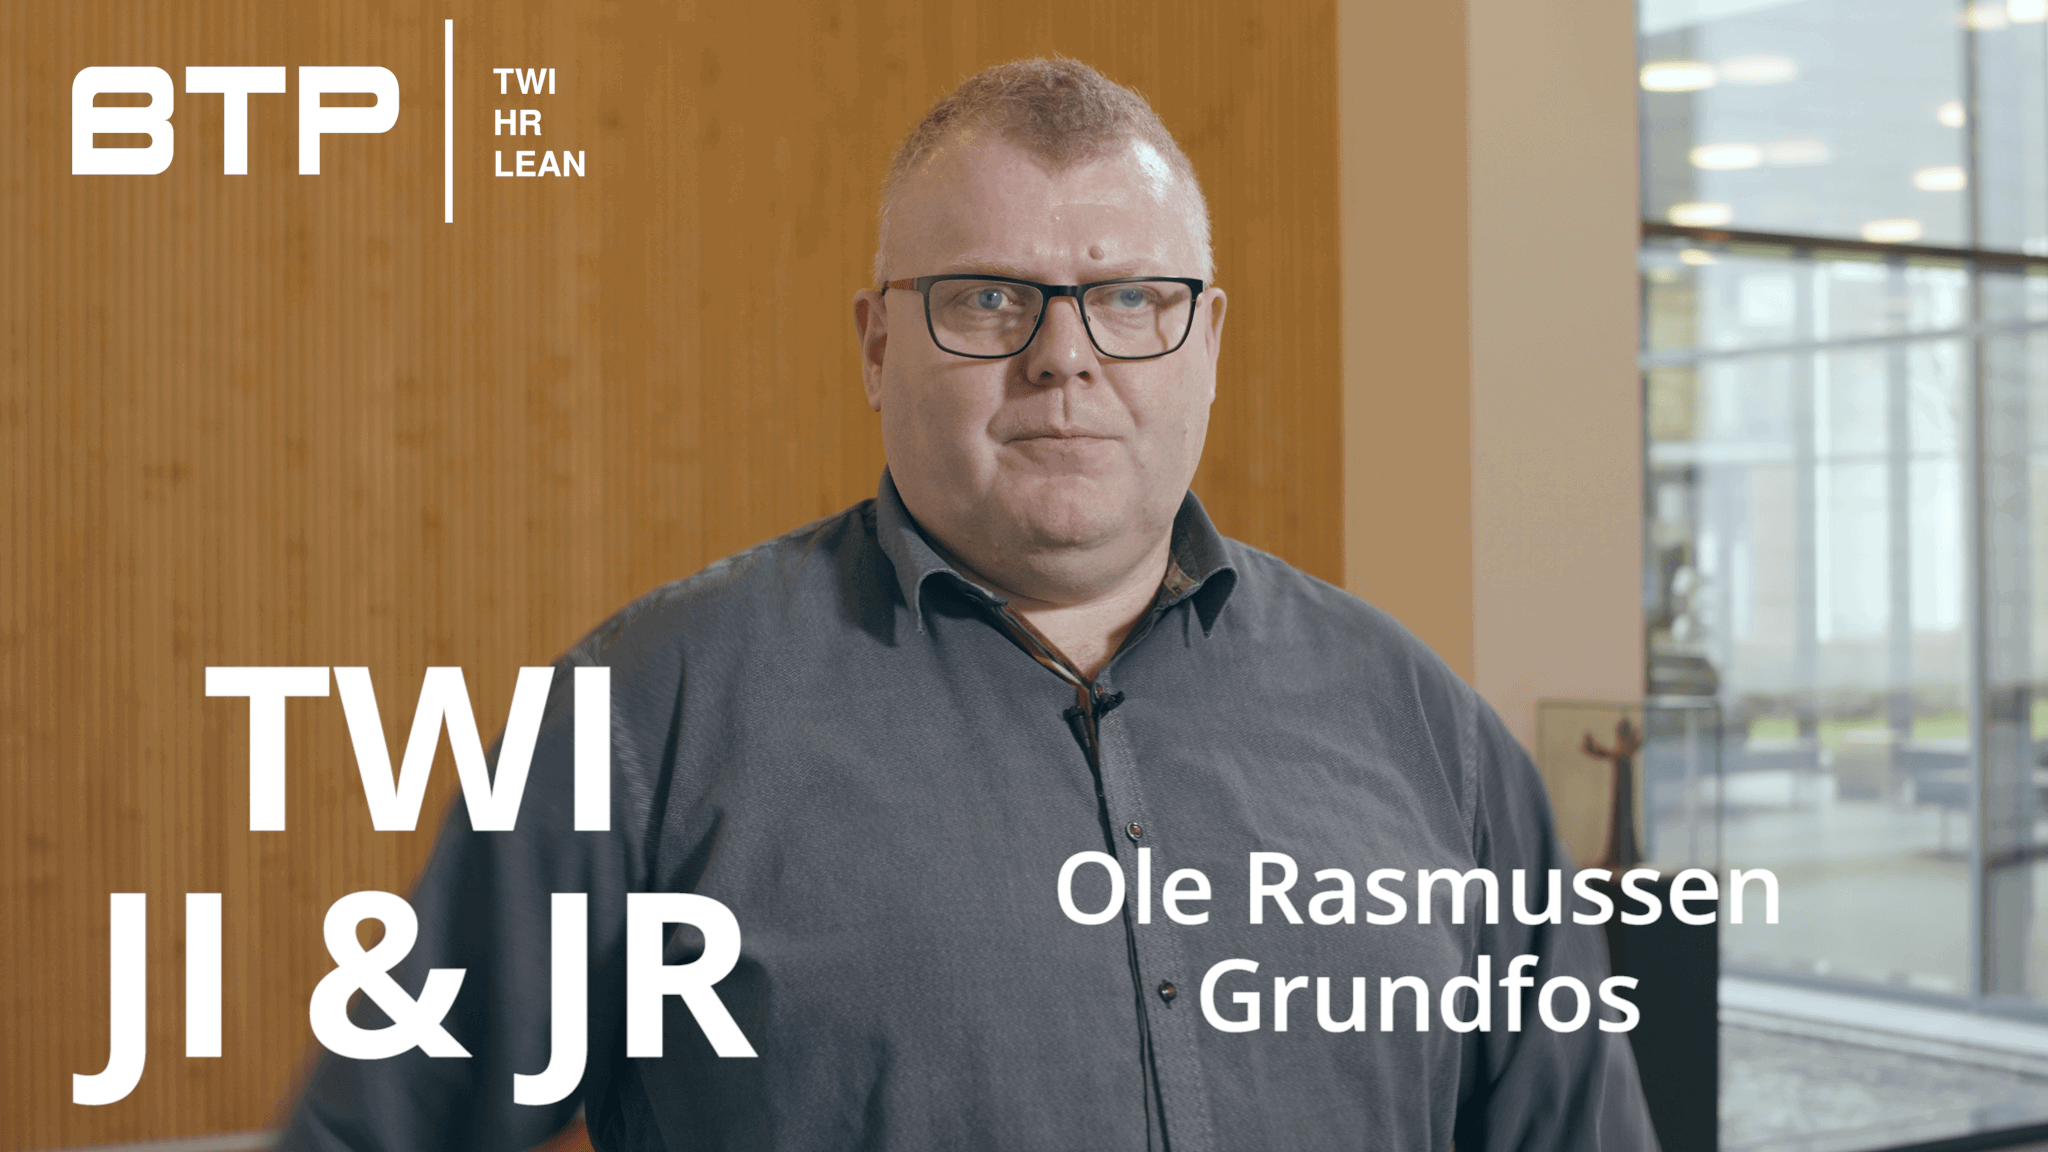 TWI Job Instruktion og TWI Job Relationer hos Grundfos